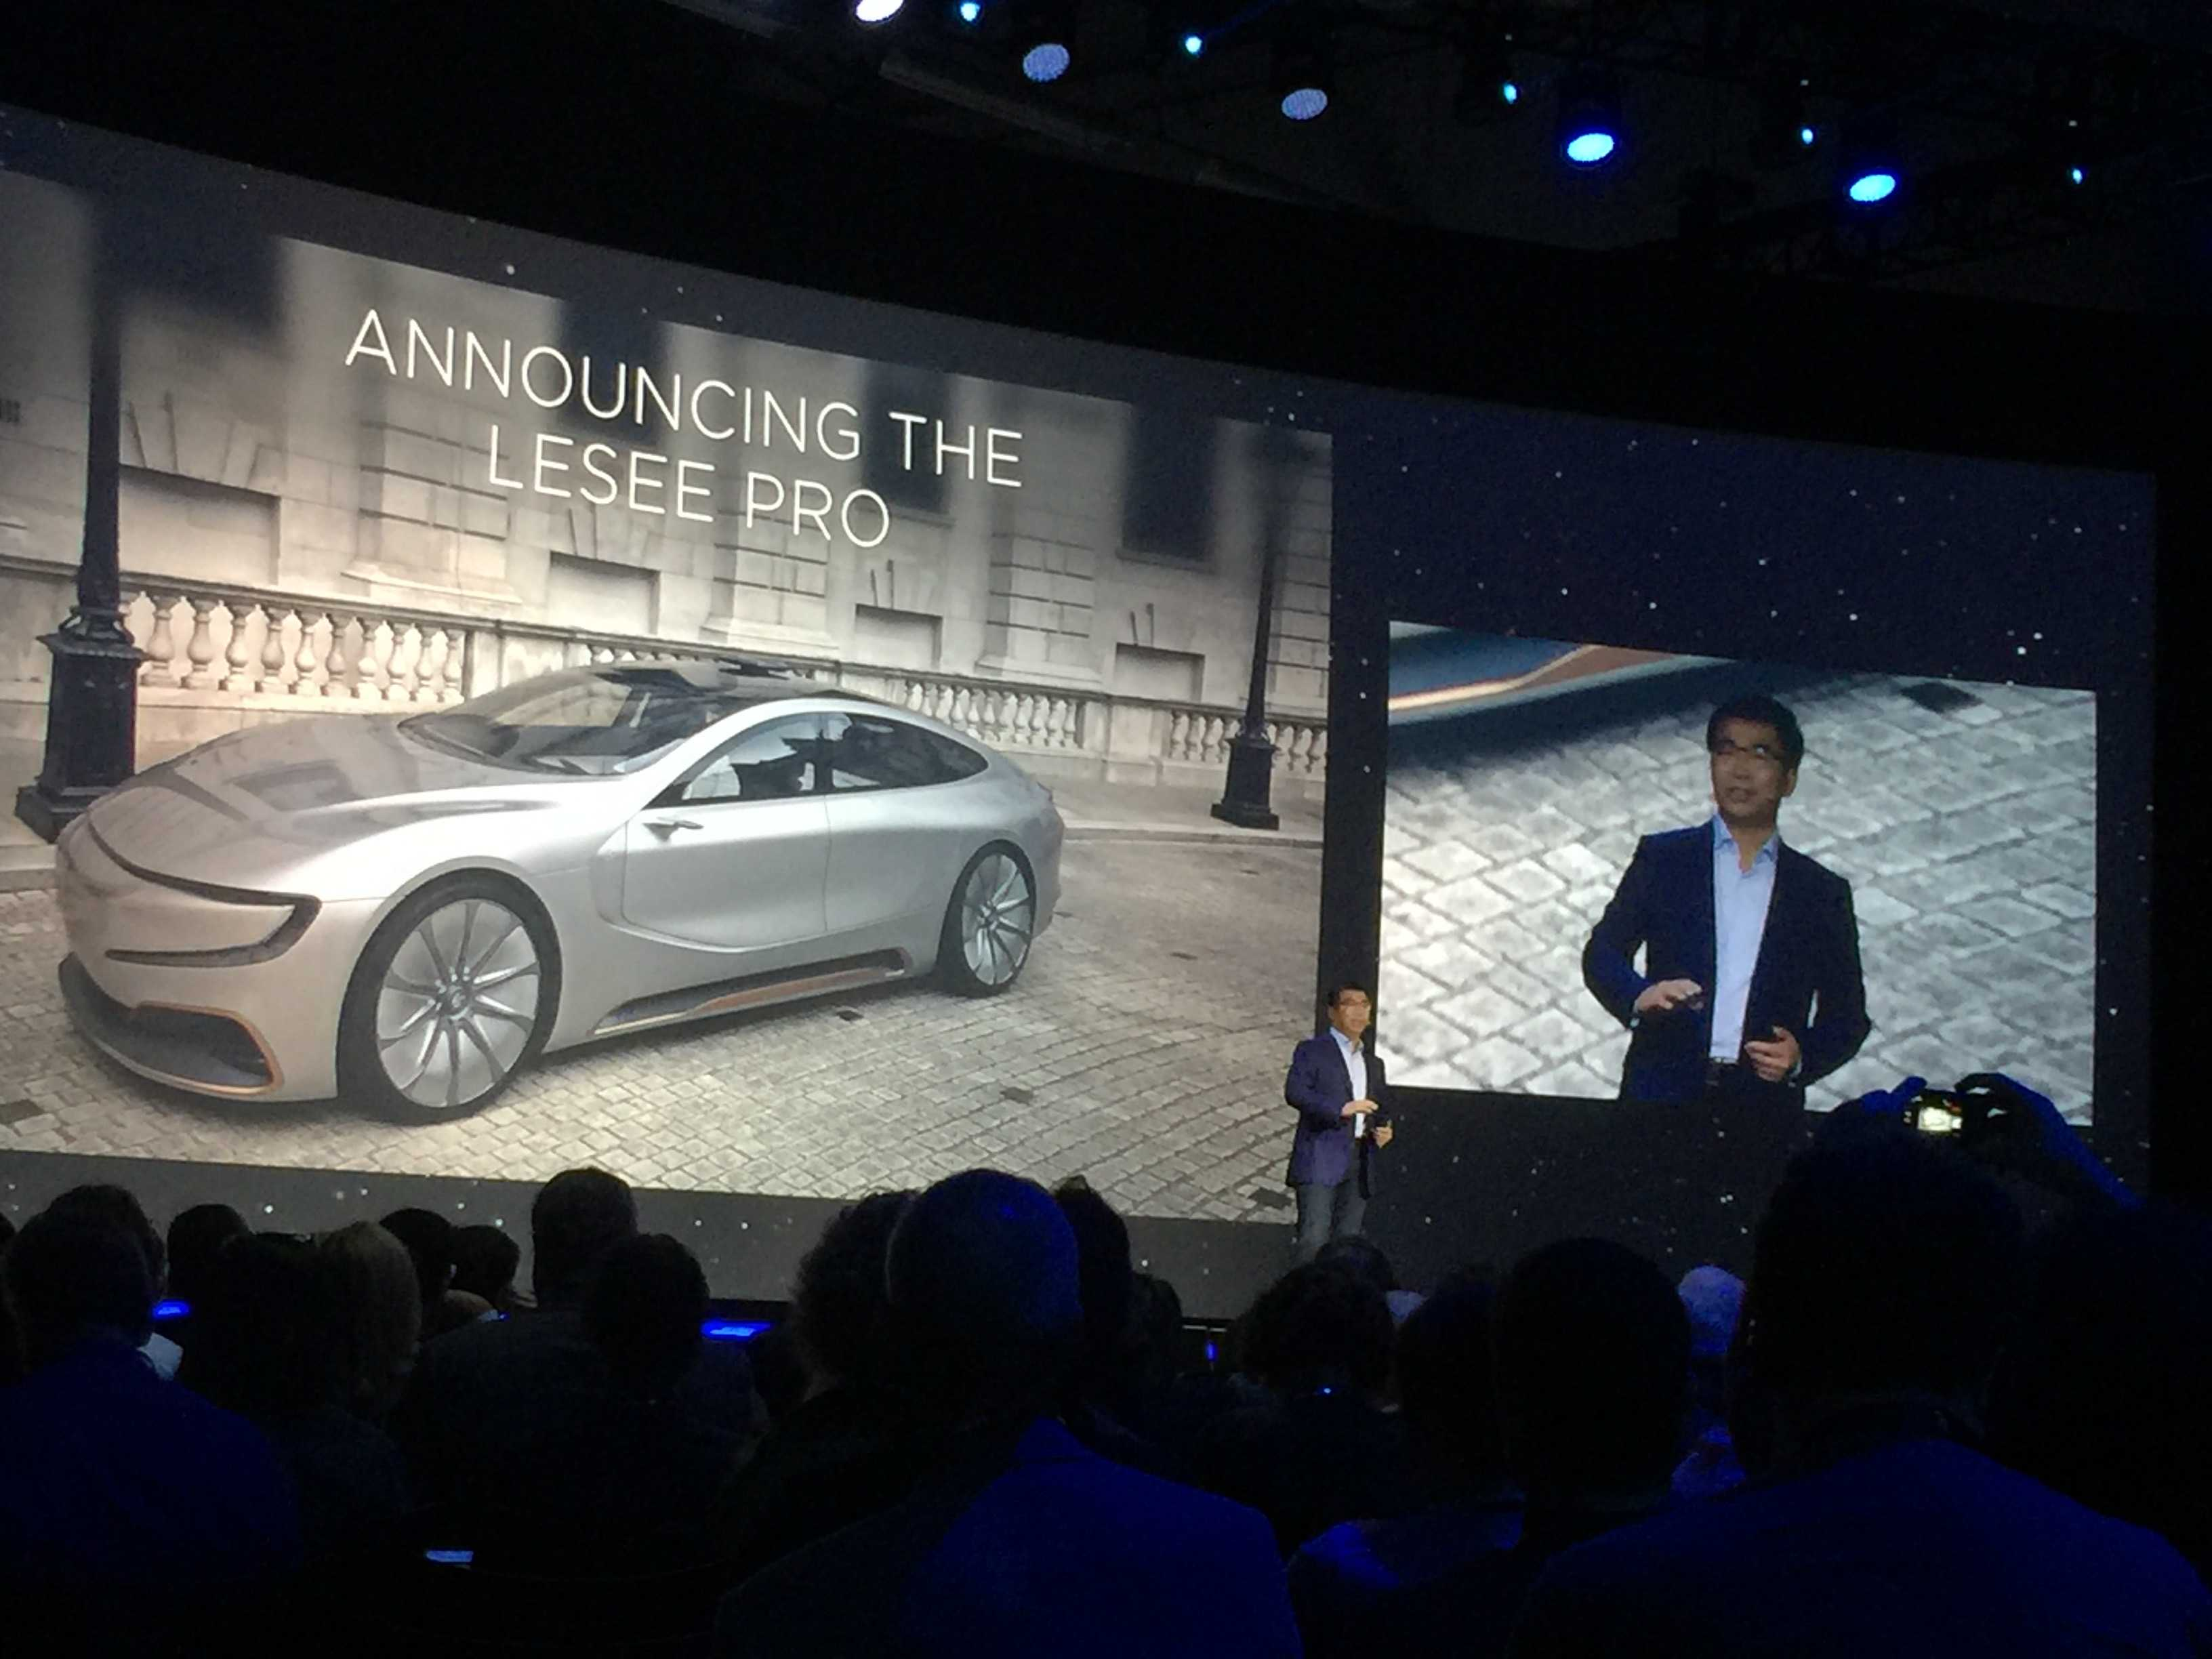 LeEco's Lei Ding shows off the LeSEE Pro, LeEco's autonomous electric concept car, in San Francisco.